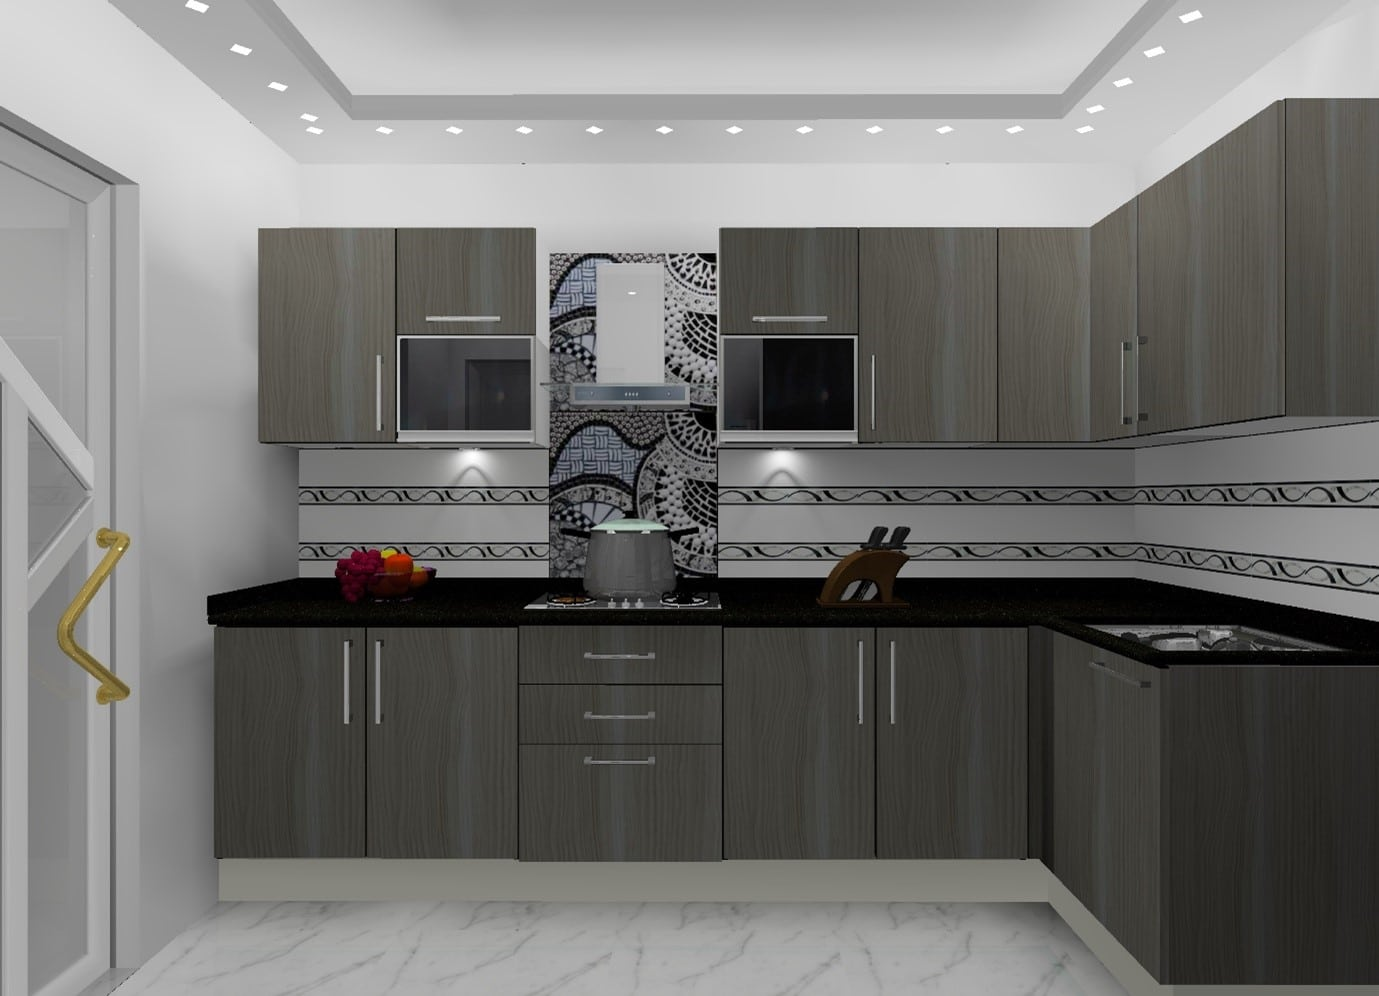 How To Create the Perfect Kitchen: Modular Design Ideas?